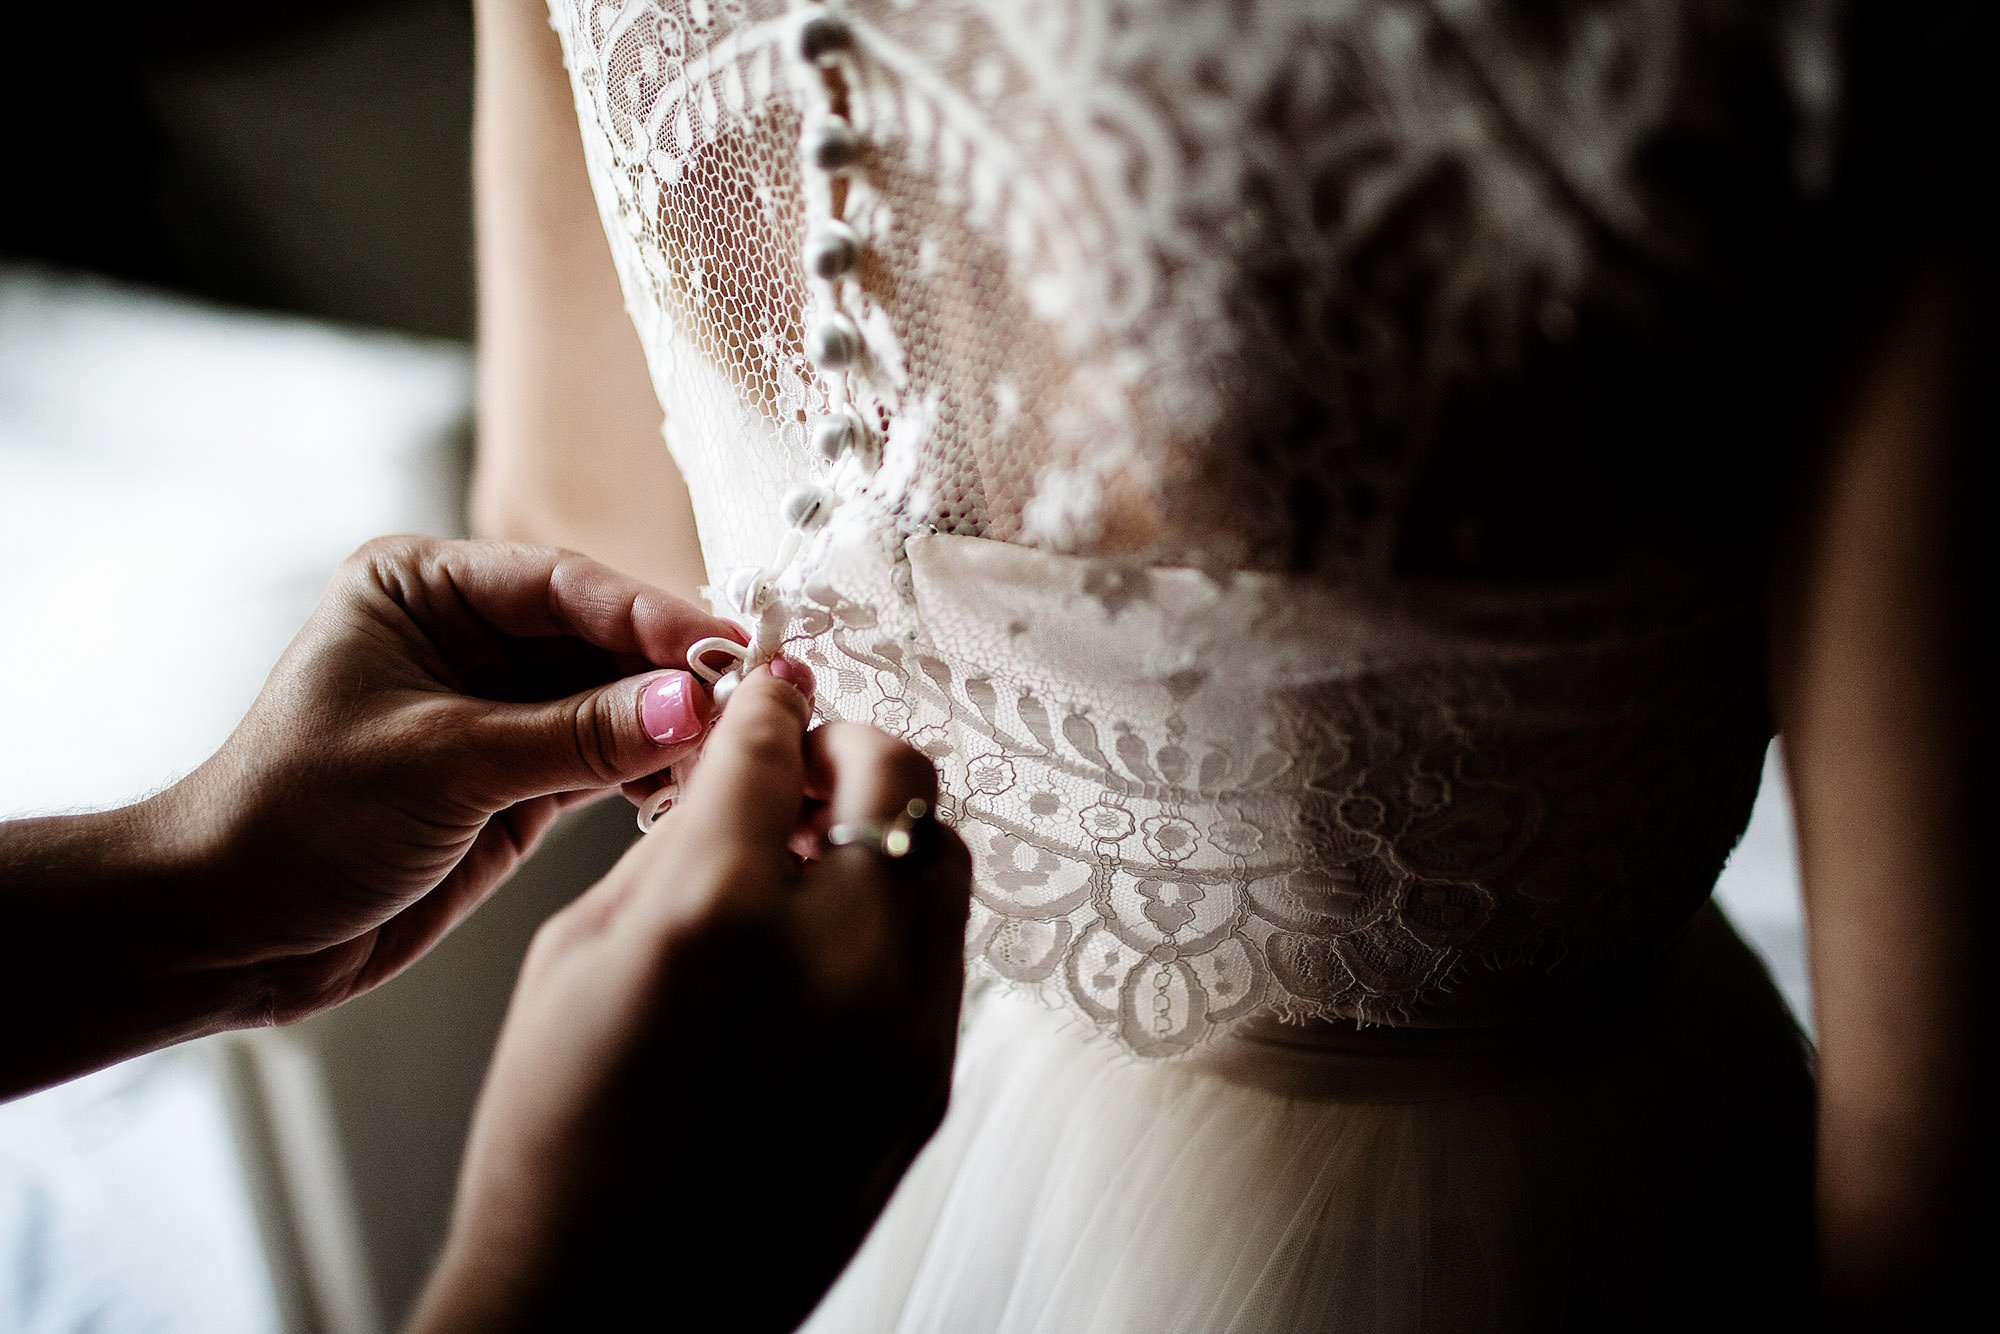 The bride puts on her wedding dress.